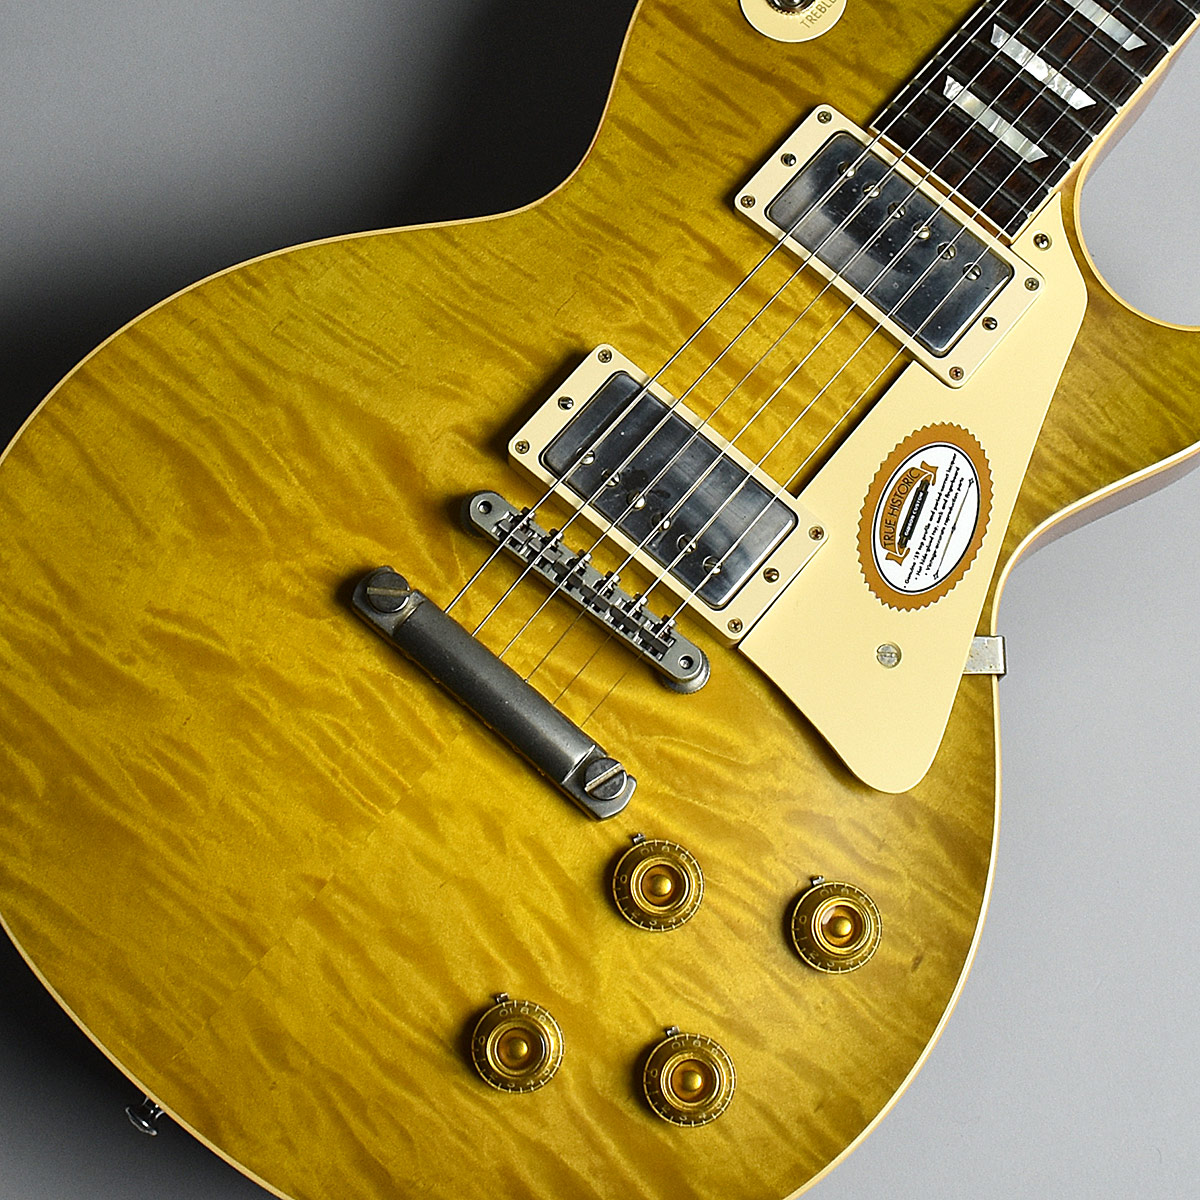 Gibson Custom Shop True Historic 1959 Les Paul Standard Danger Burst Vintage Gloss M2M S/N:971270 【ギブソン カスタムショップ】【未展示品】